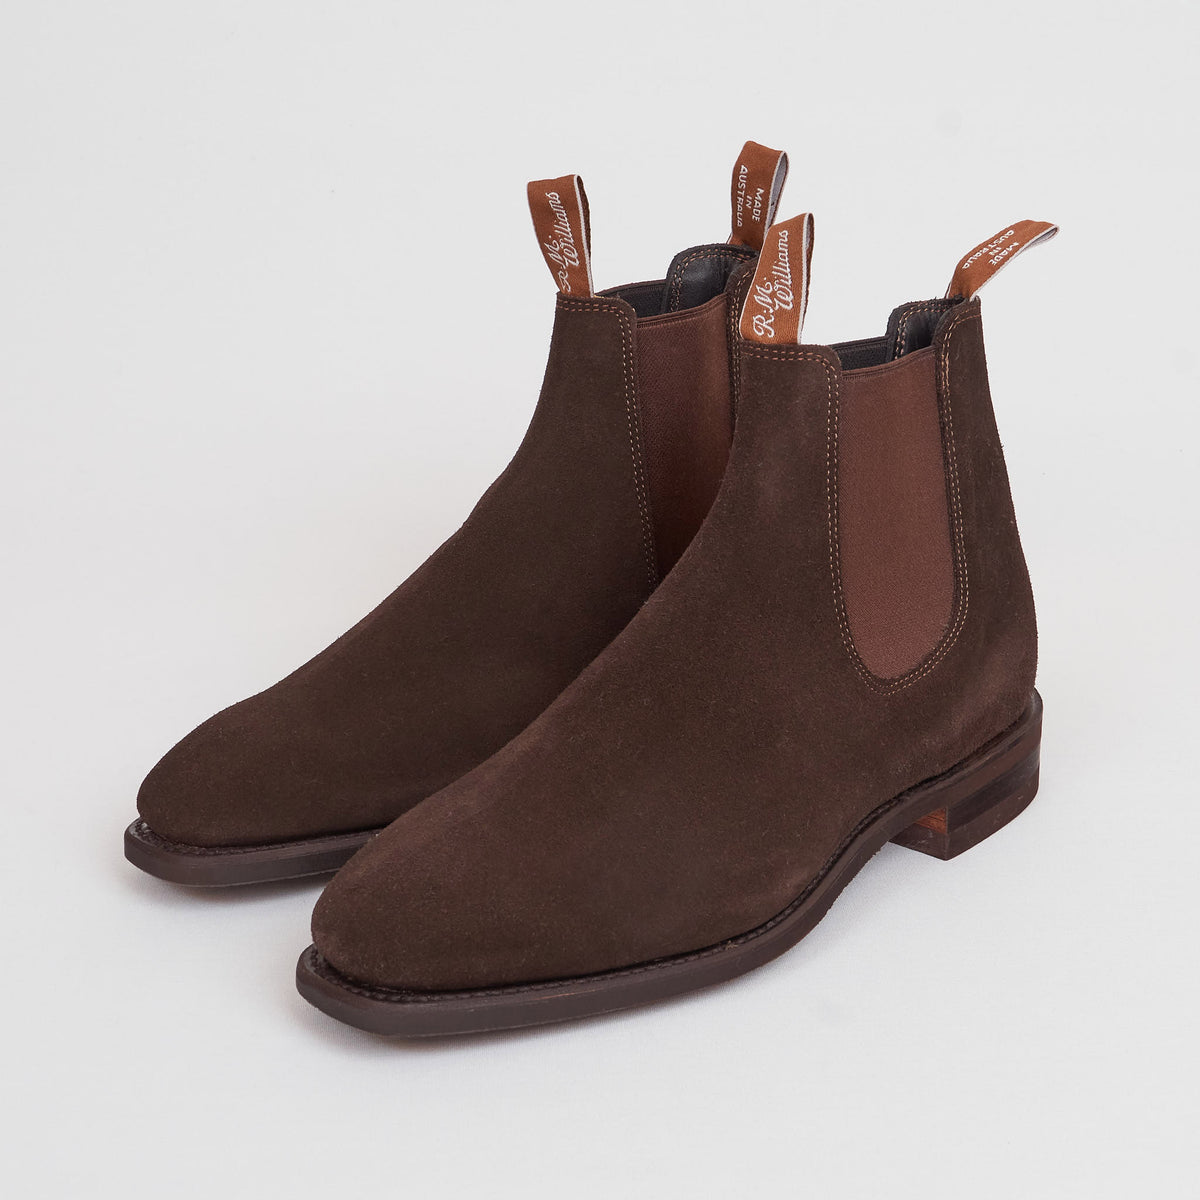 R.M. Williams Comfort Craftsman Suede